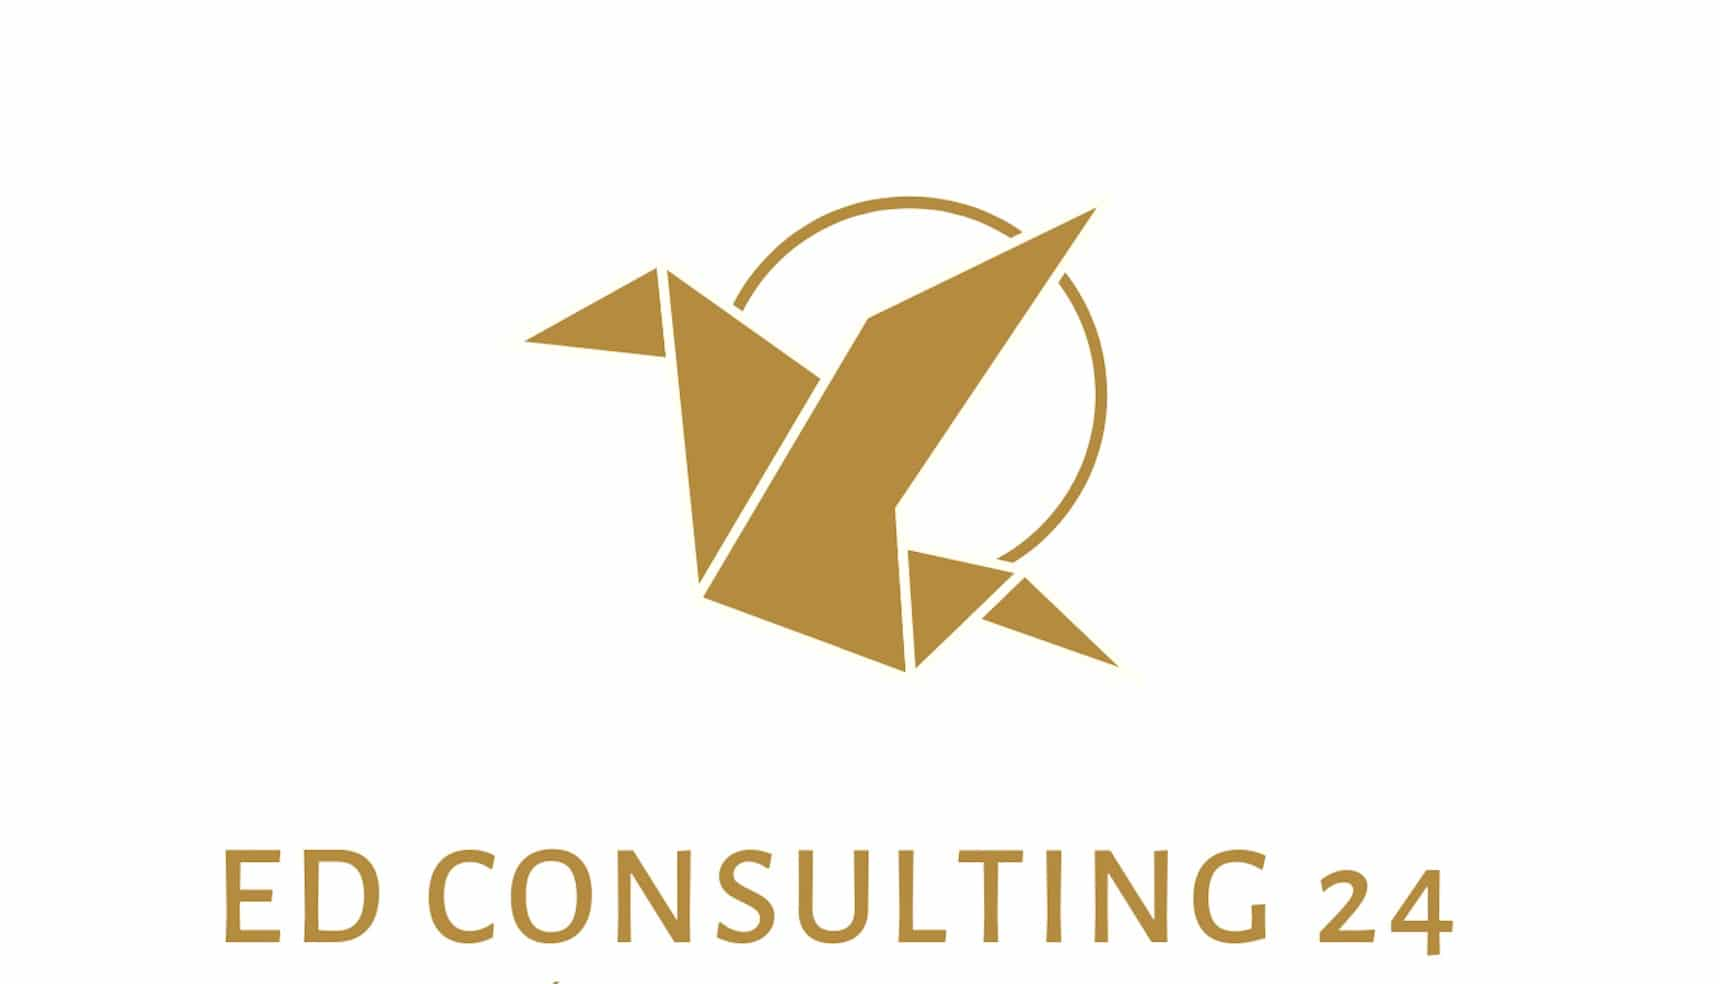 Ed consulting 24